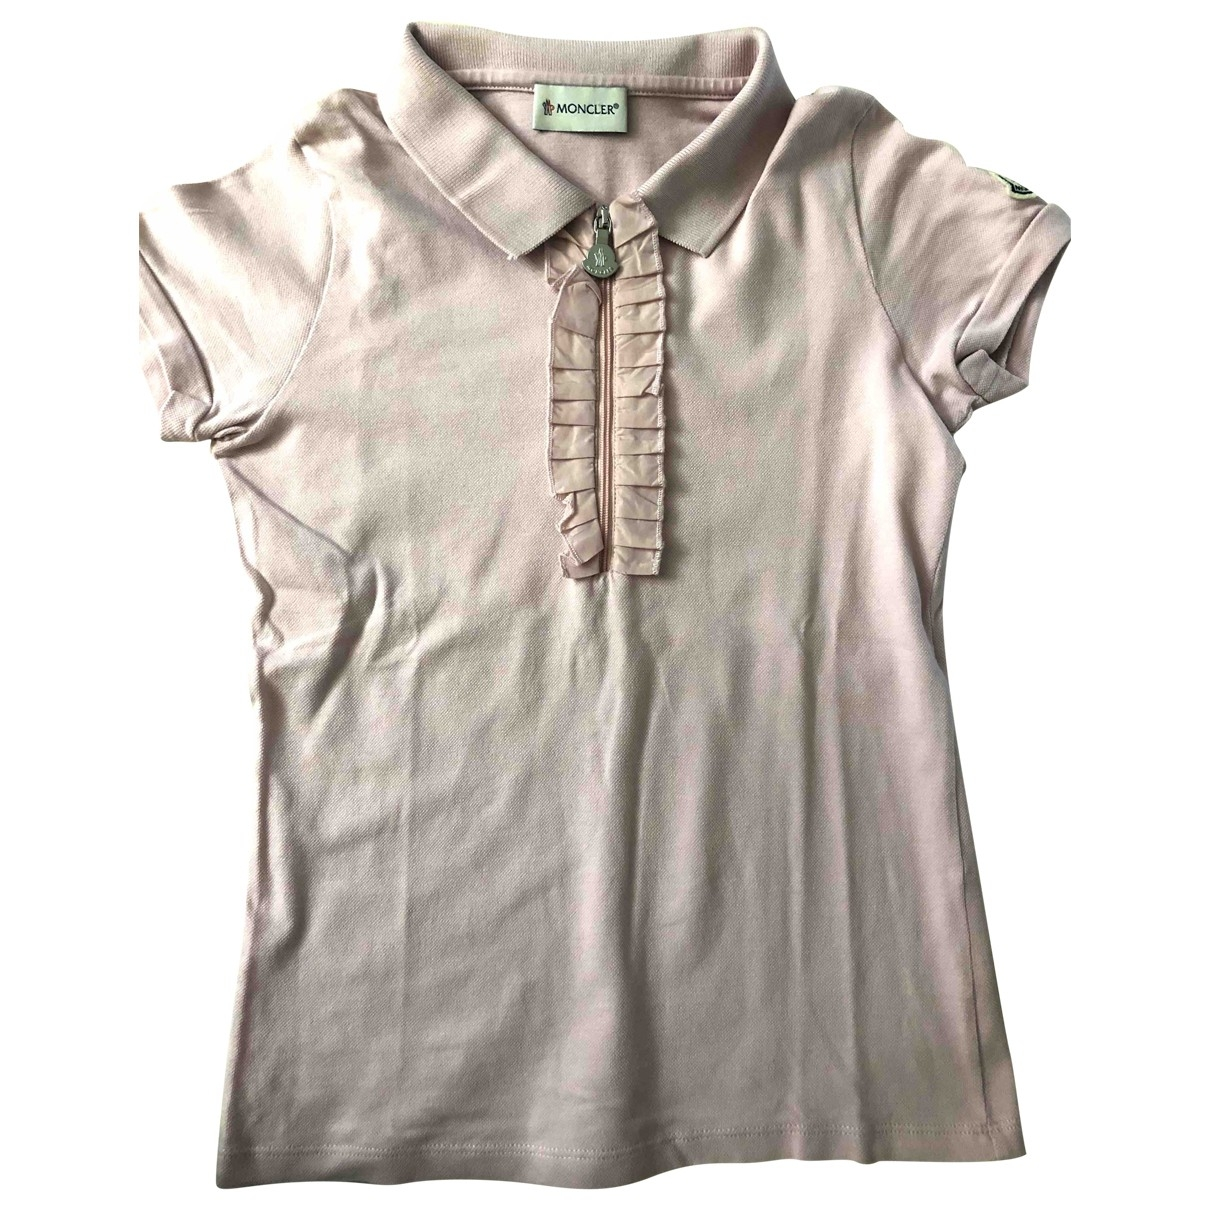 Moncler \N Pink Cotton  top for Kids 10 years - until 56 inches UK